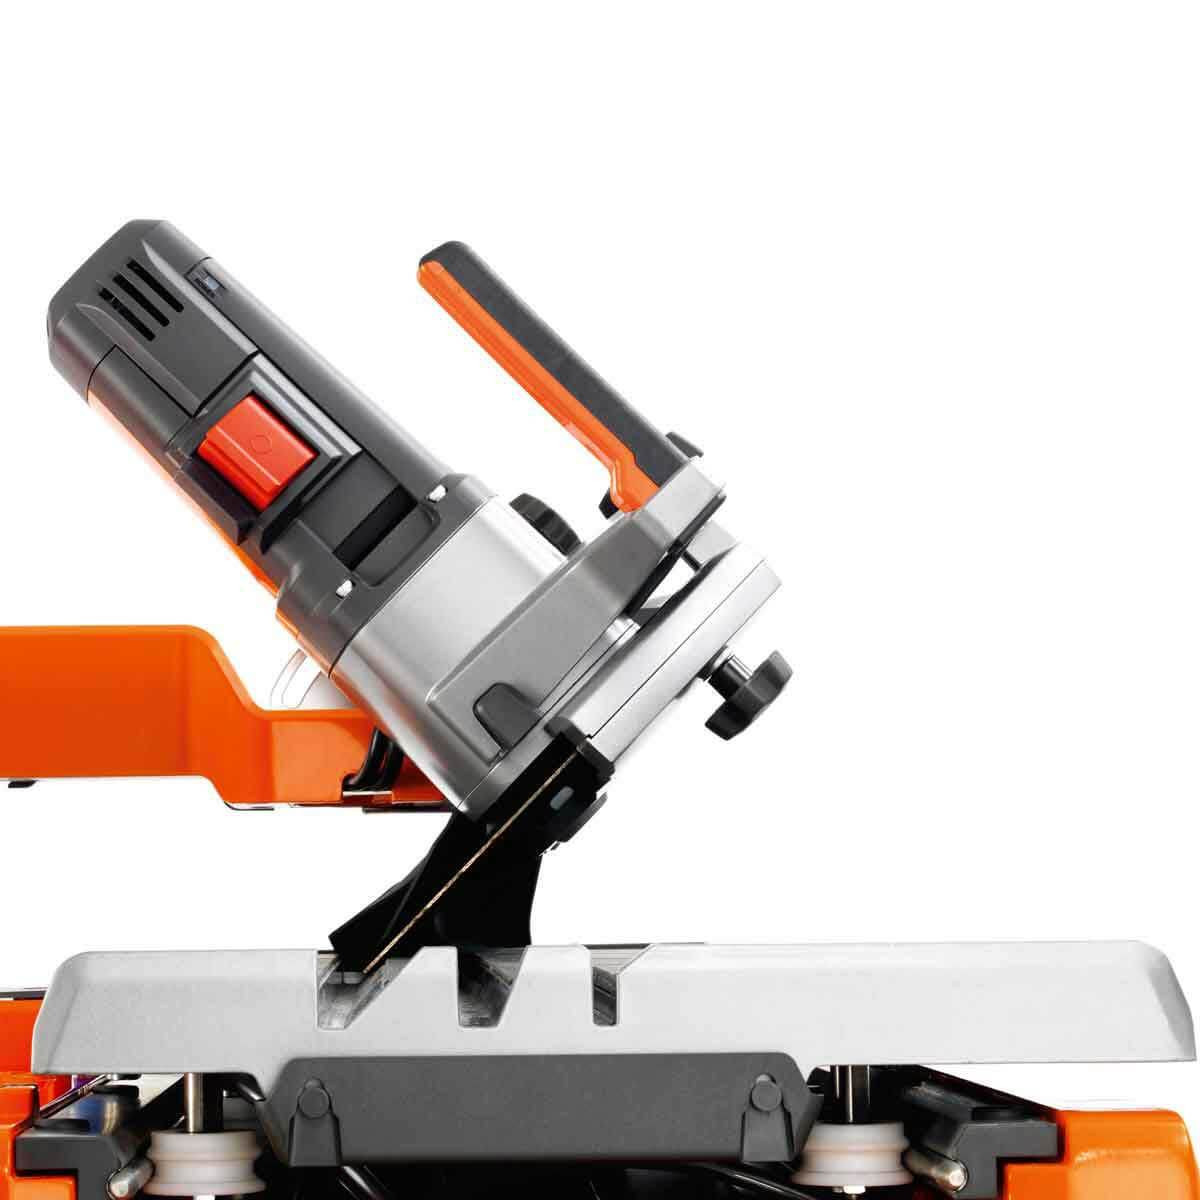 Husqvarna TS60 45 degree cutting capability